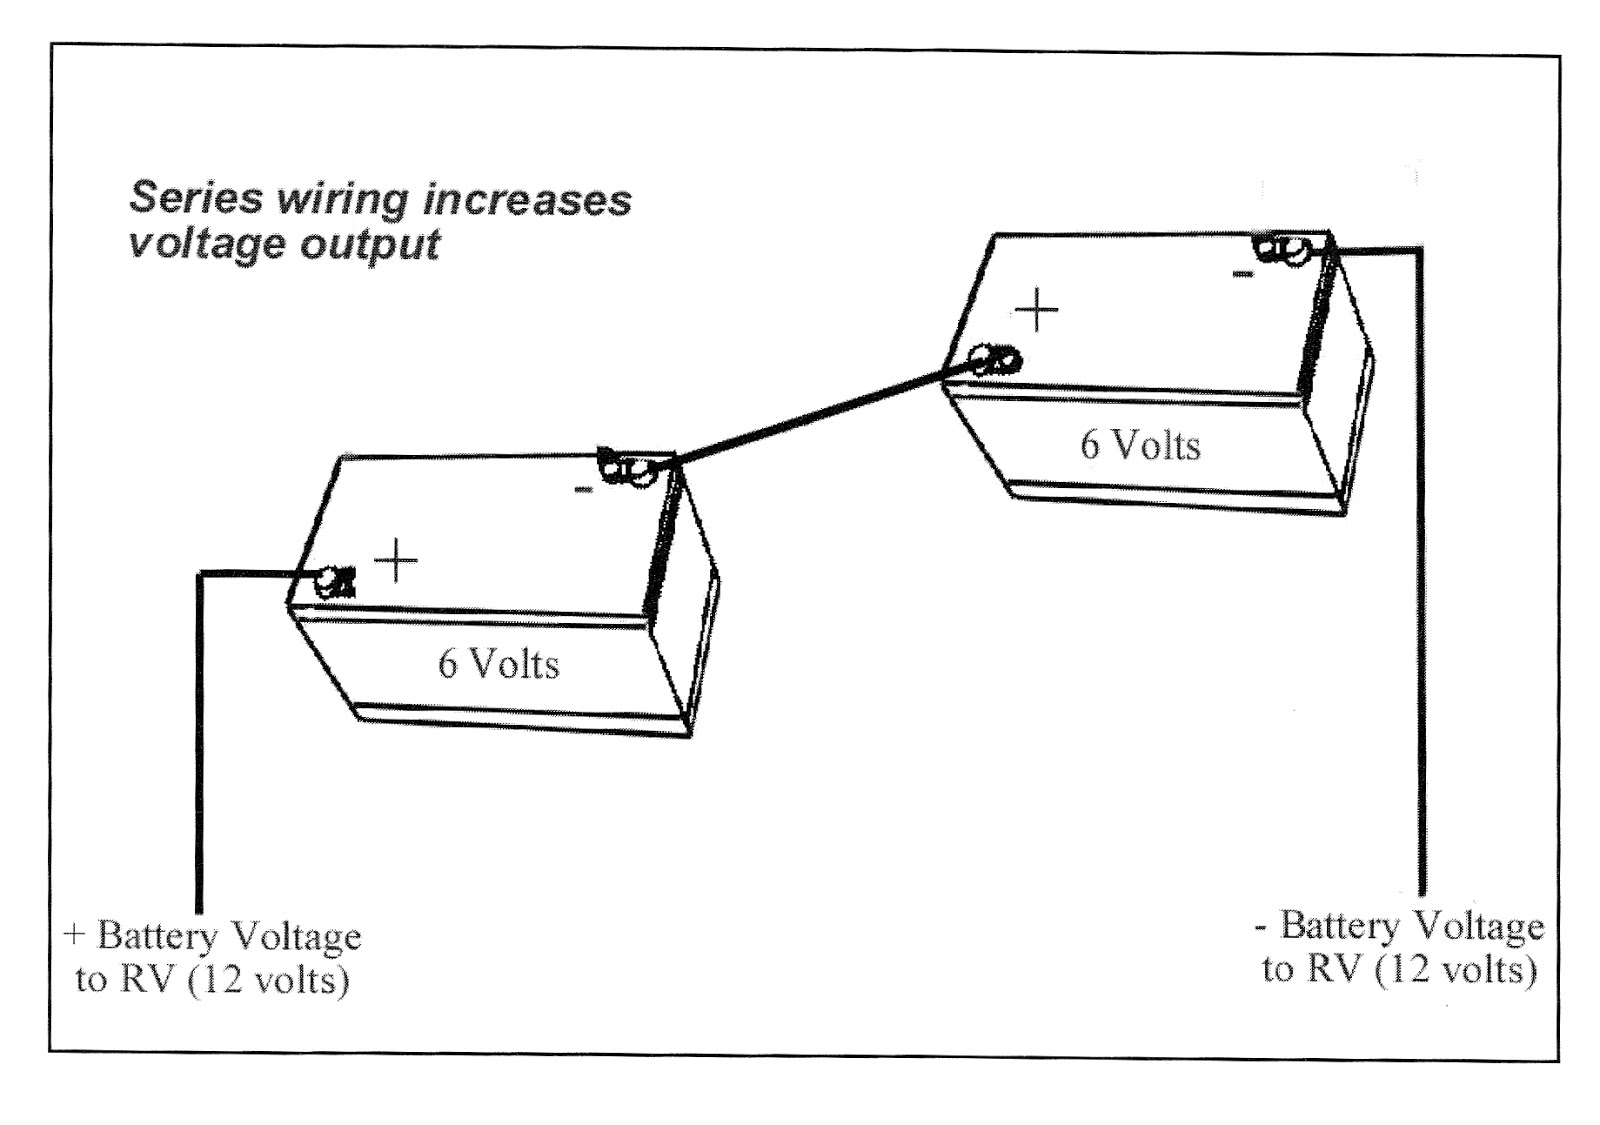 battery+series+wiring+diagram penny's tuppence (2 cents in brit) rv transmission 12v to 6v 12 volt battery wiring diagram at mifinder.co